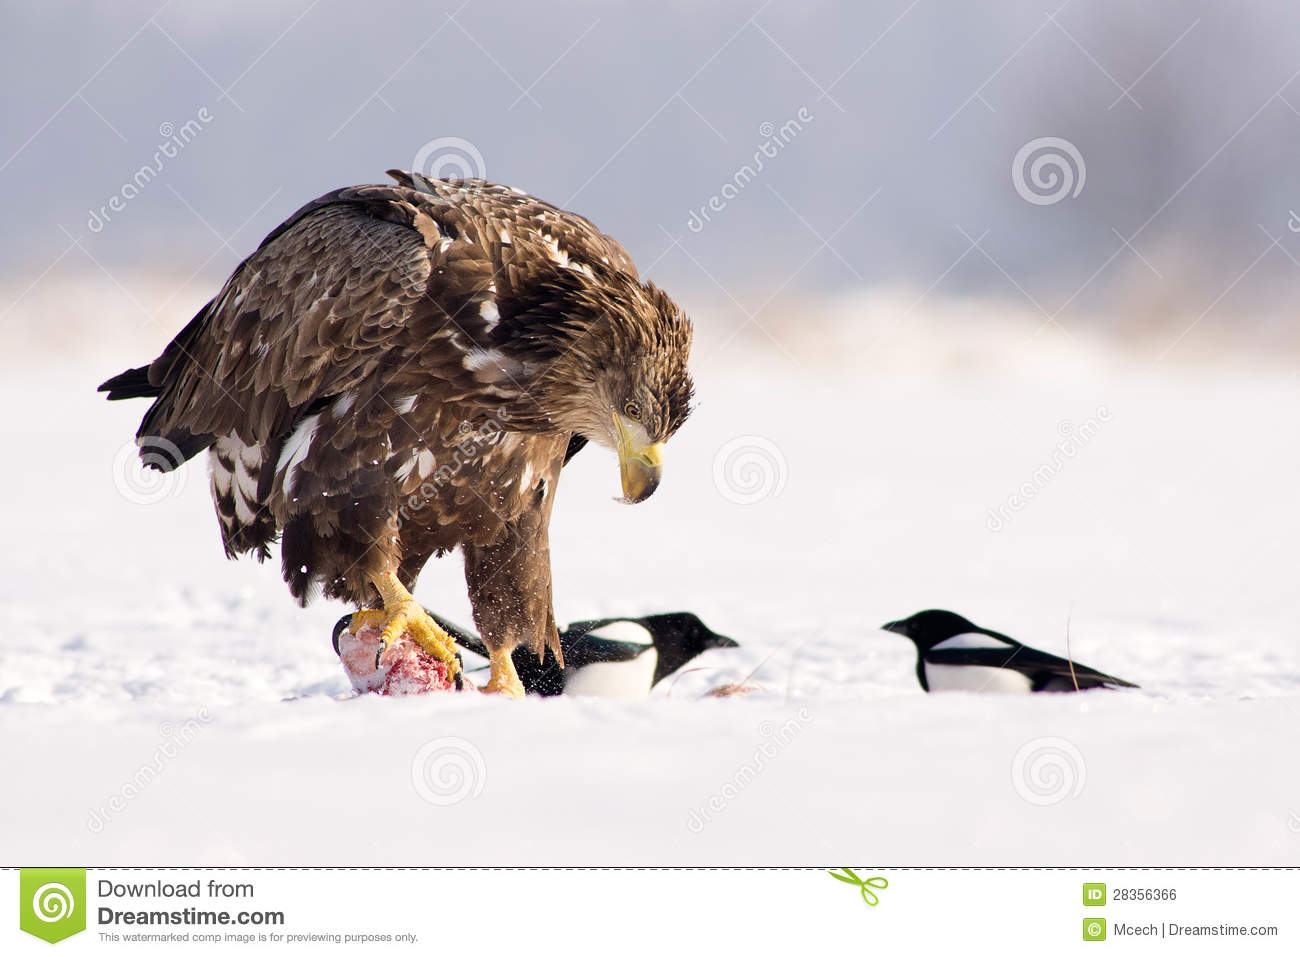 Eagle eating meat - photo#22